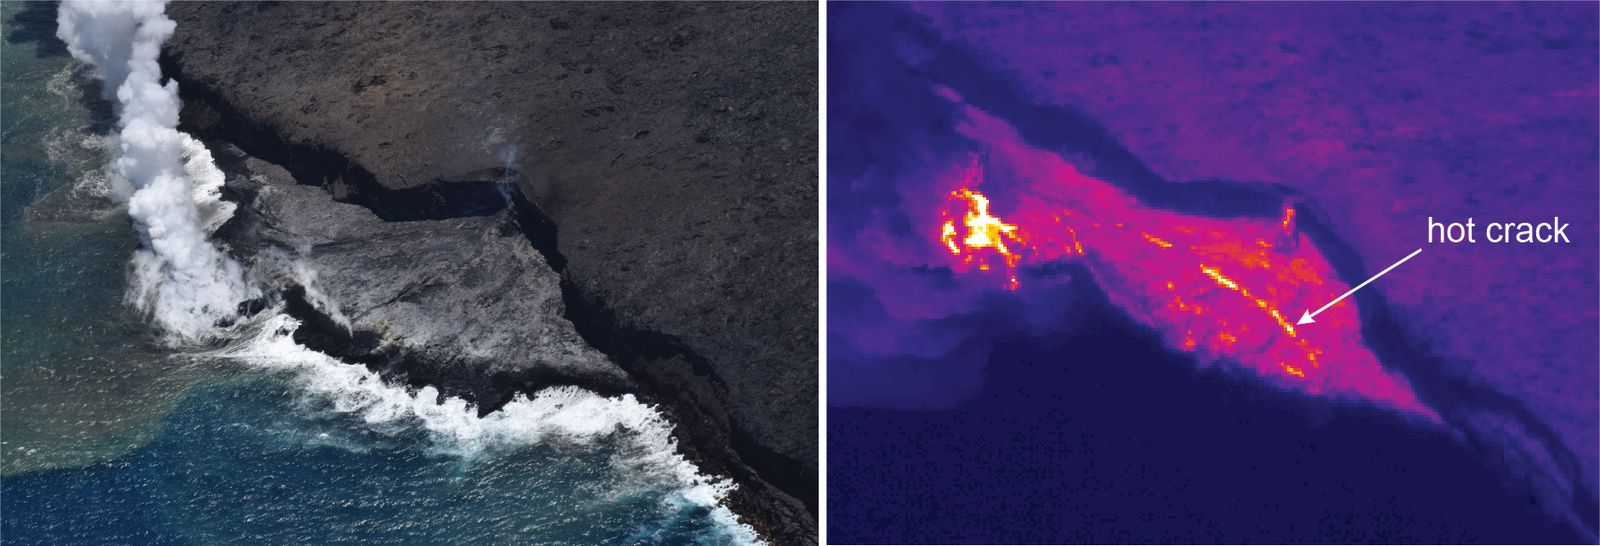 Kilauea - crack in the delta on this image in natural light and thermal image - photo HVO-USGS 21.06.2017